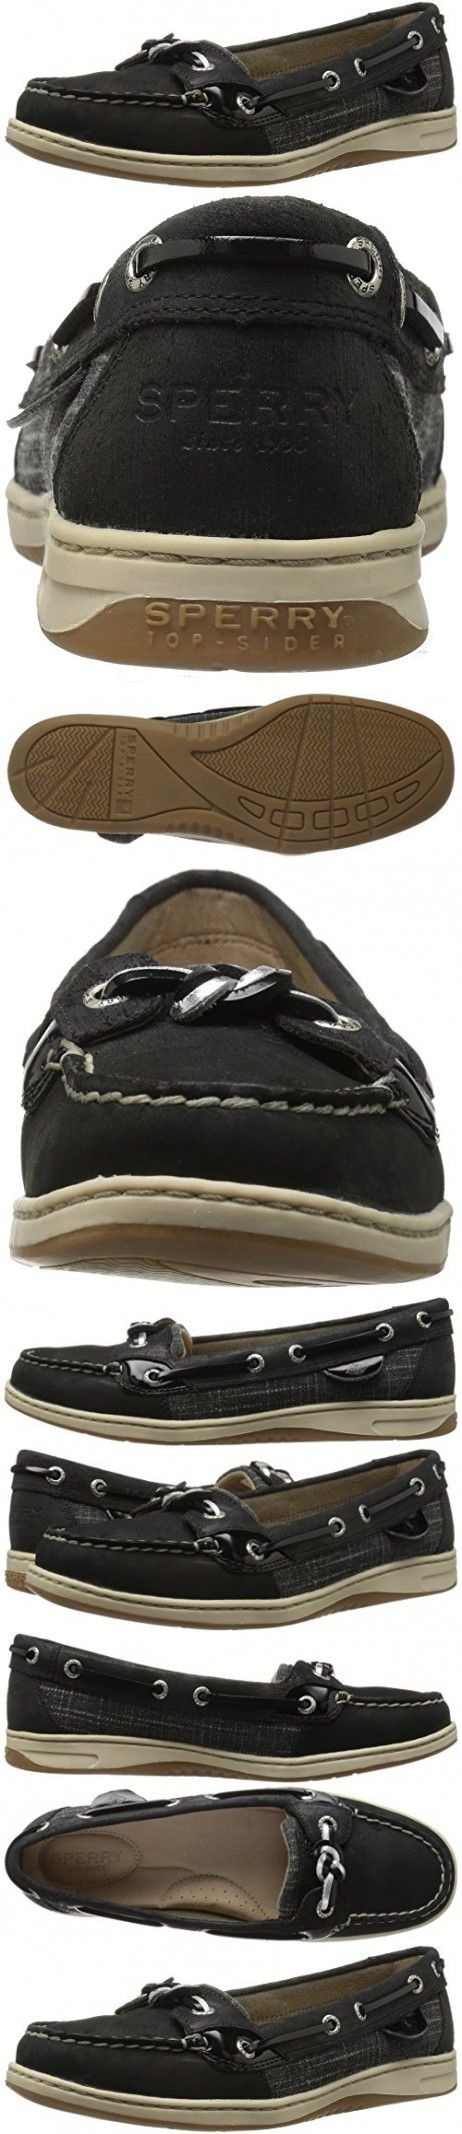 Sperry Top-Sider Women's Sandfish Boat Shoe, Black, 6.5 M US